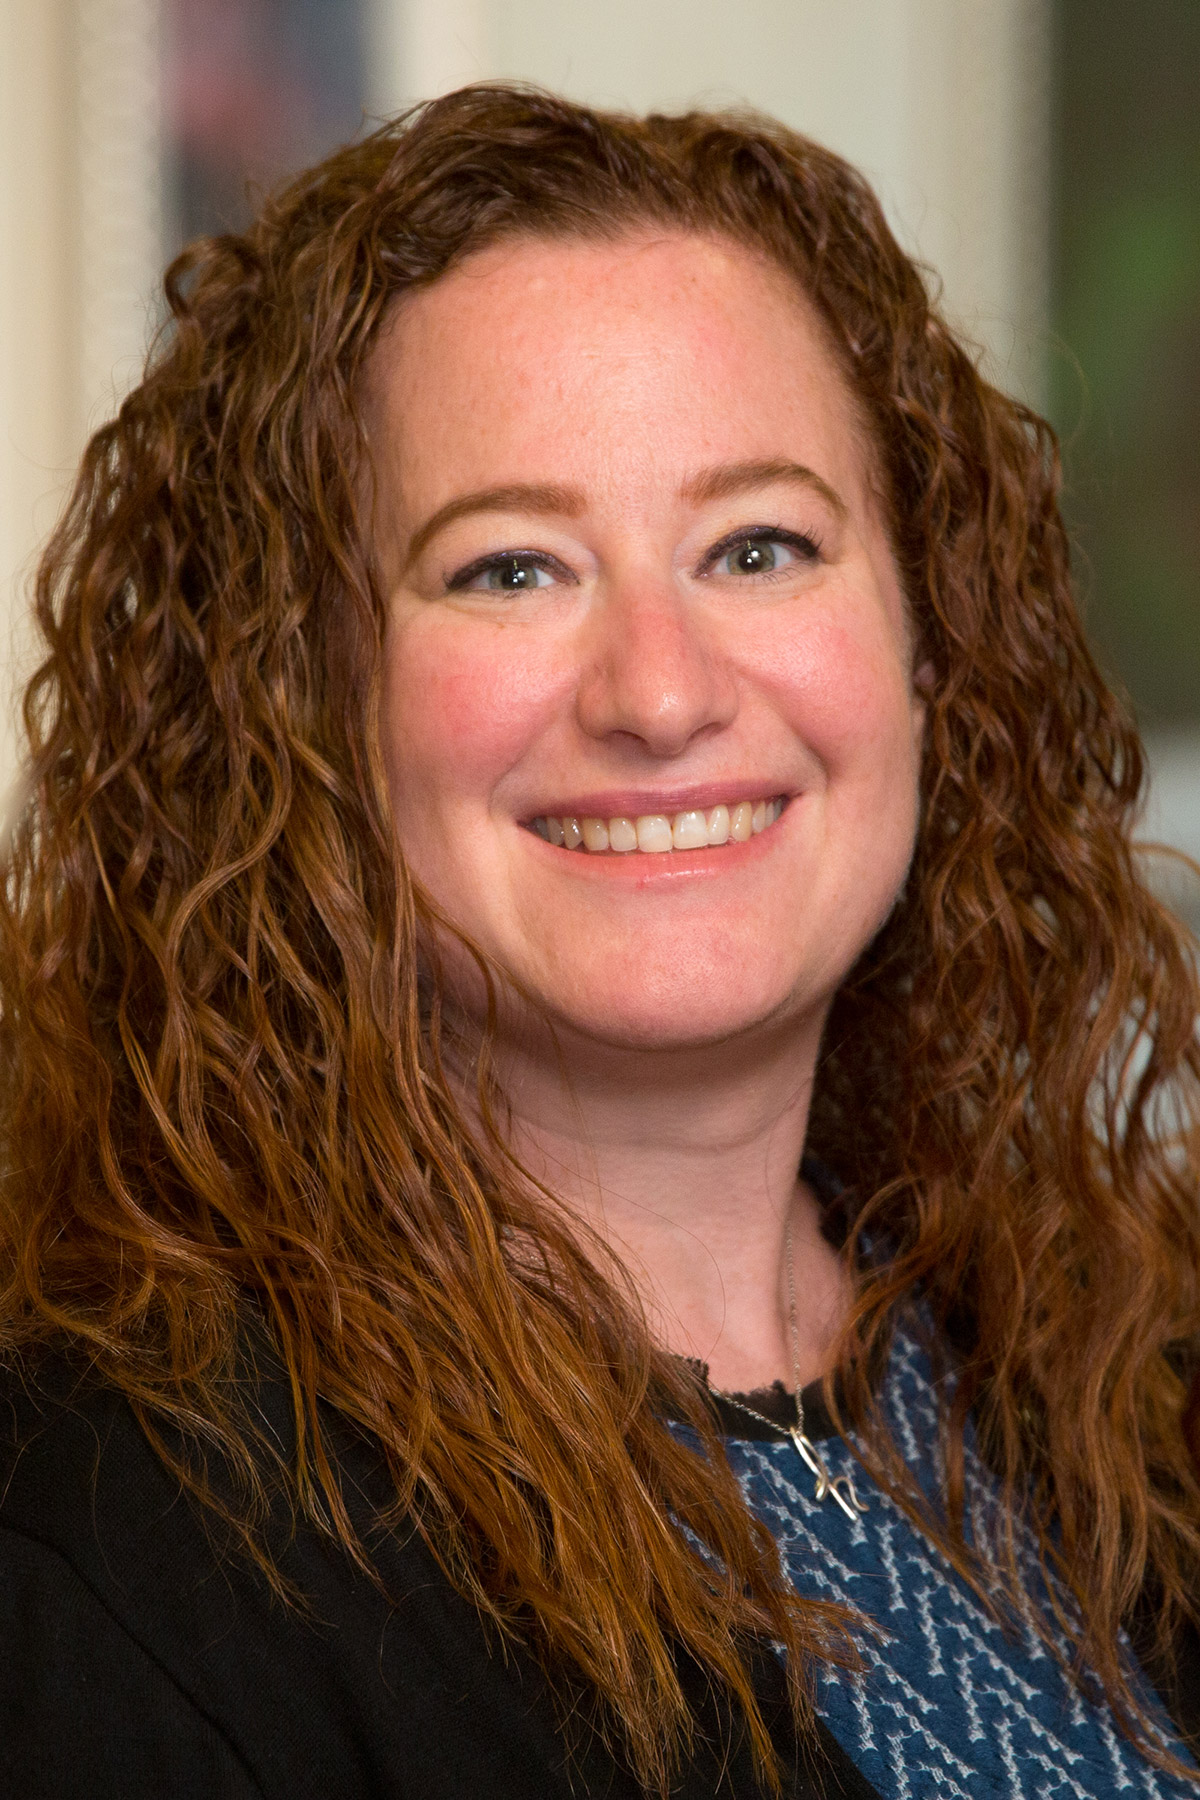 A photo of Heather C. Kaplan.